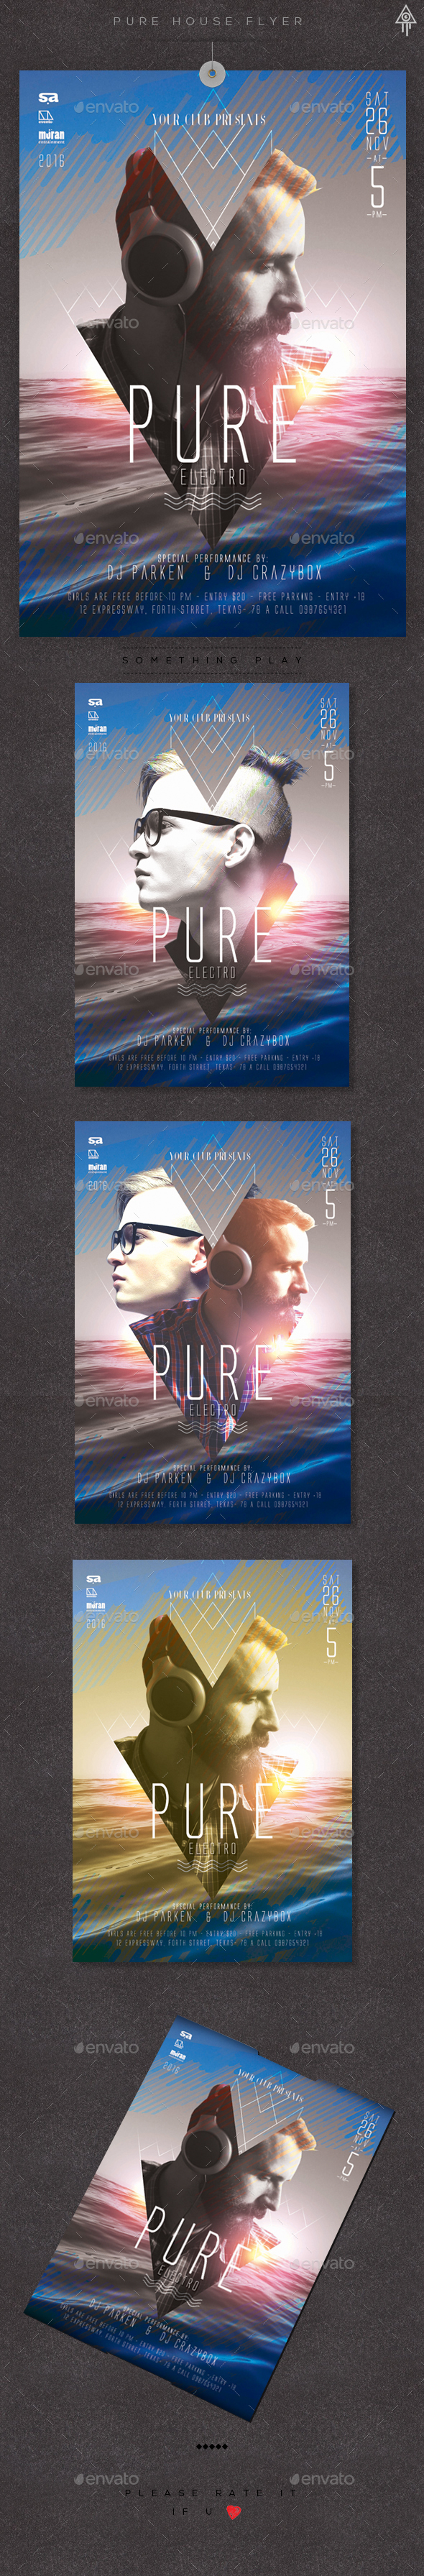 Pure House Flyer - Clubs & Parties Events